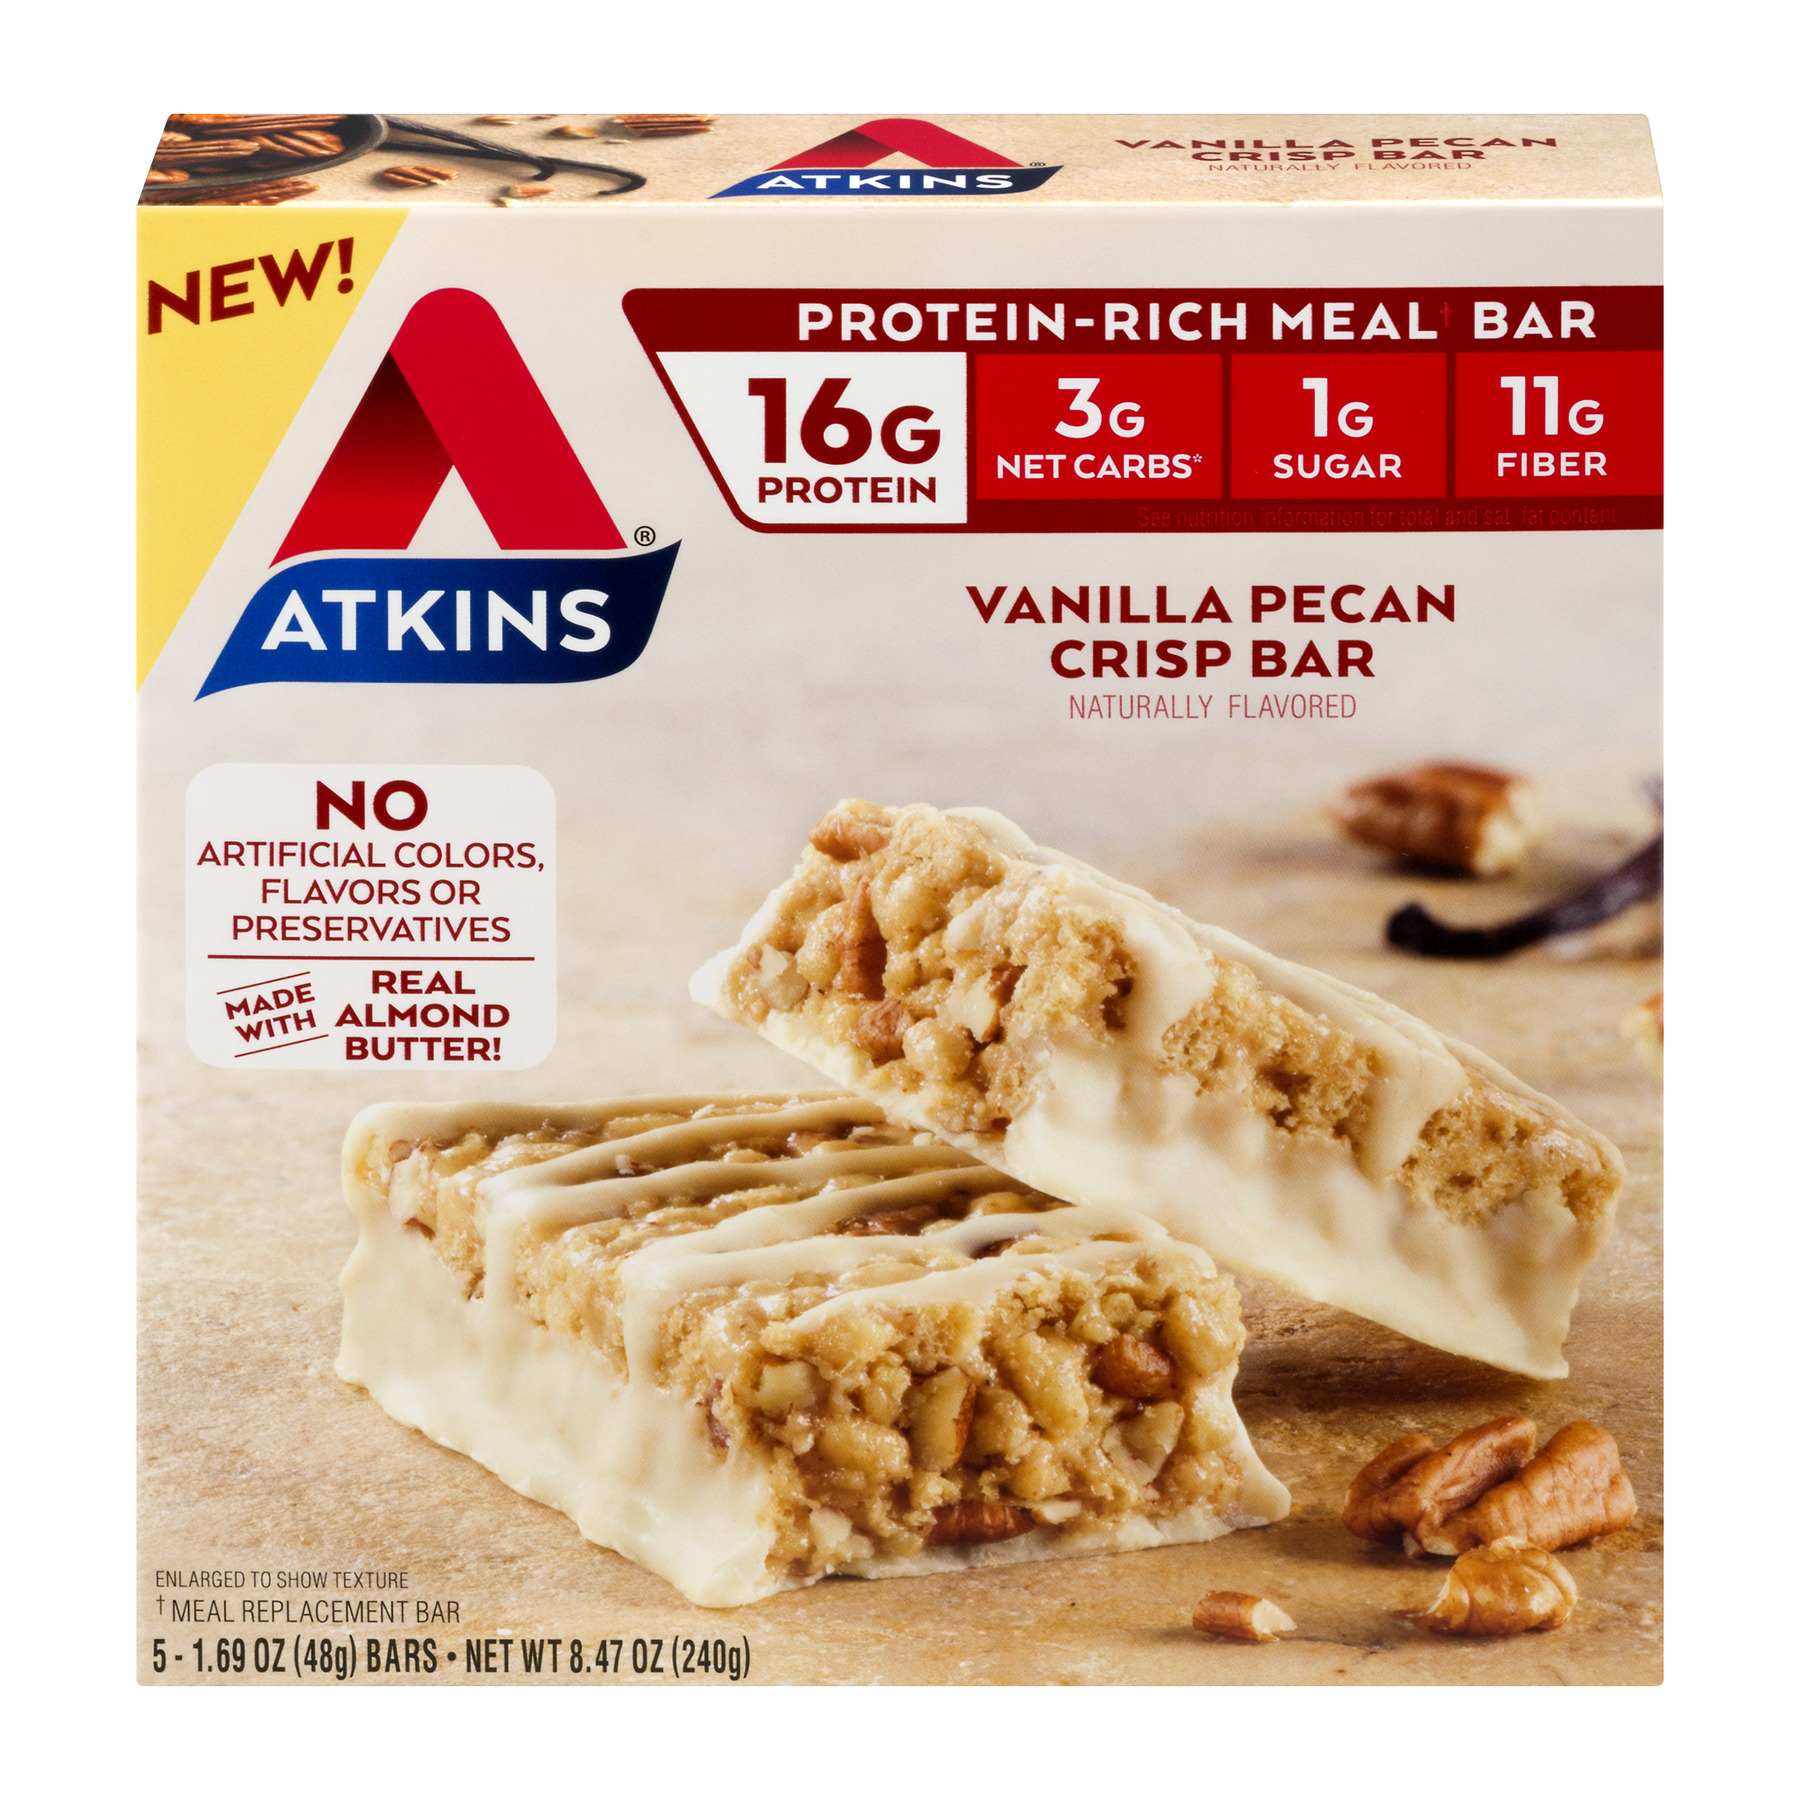 Atkins Protein-Rich Meal Bar Vanilla Pecan Crisp Bar - 1.7oz, 5-pack (Meal Replacement)